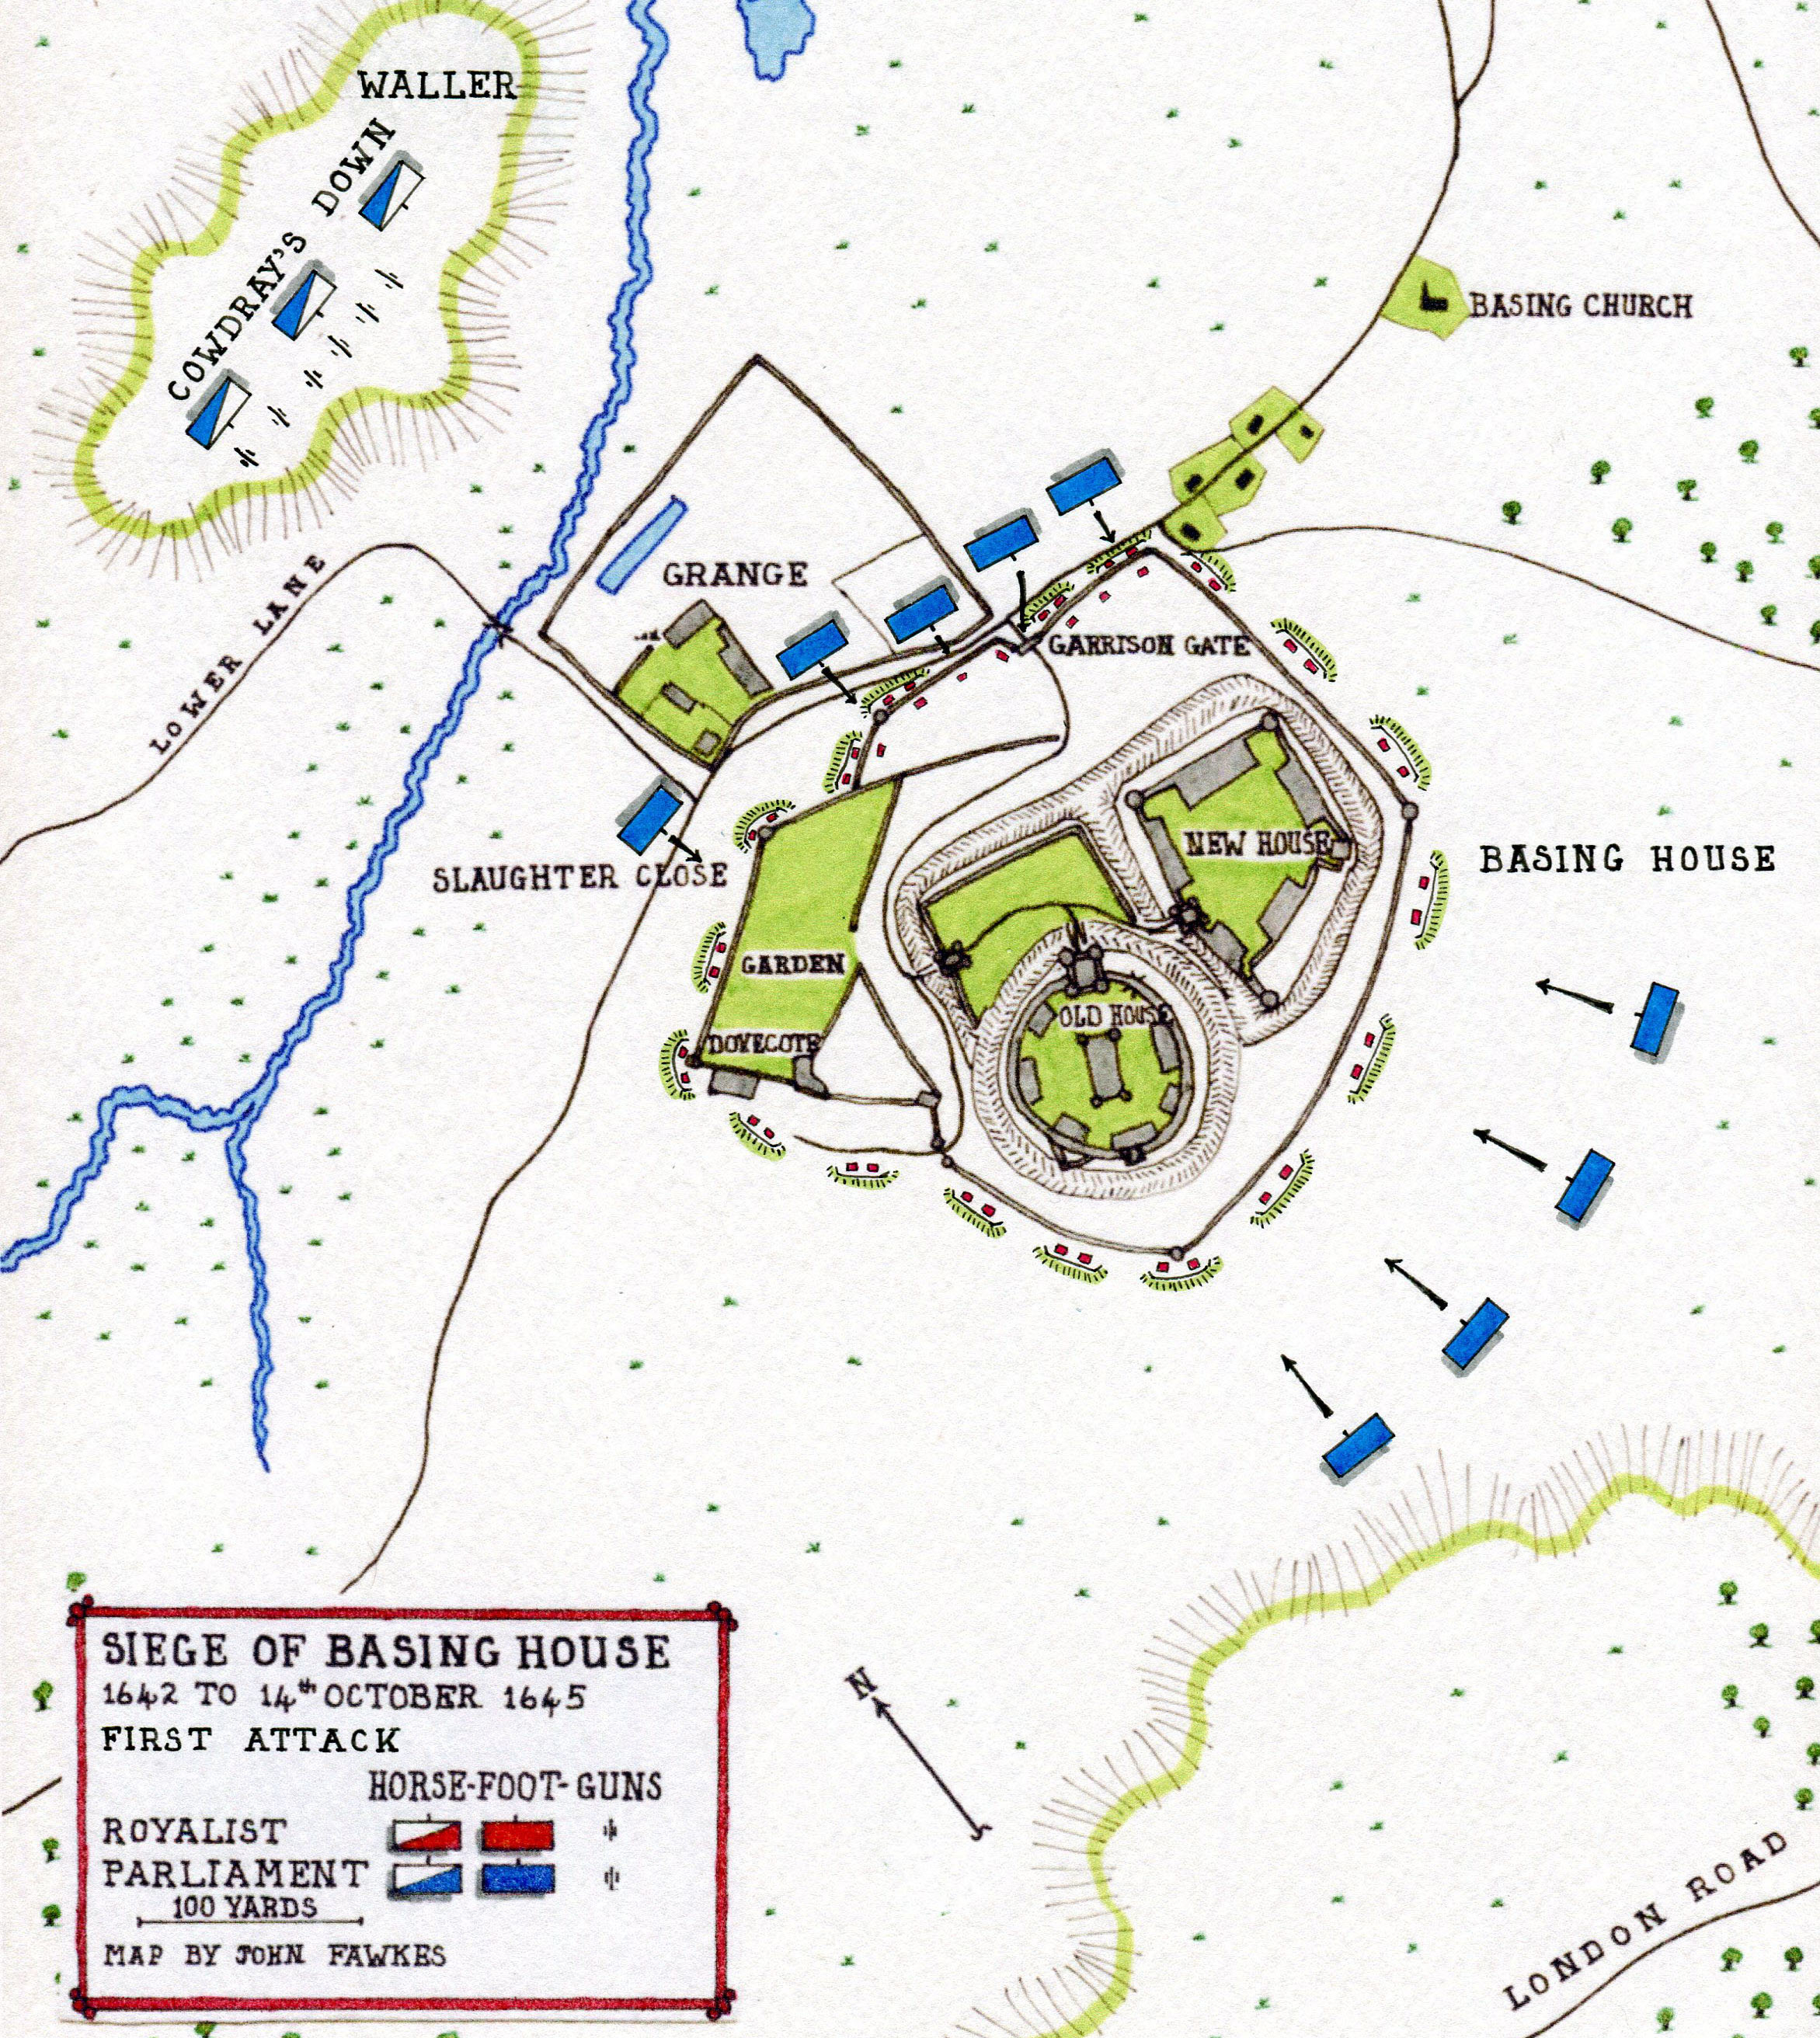 Map of the First Attack on Basing House on 6th November 1643: Siege of Basing House 1642 to 1645 during the English Civil War: map by John Fawkes